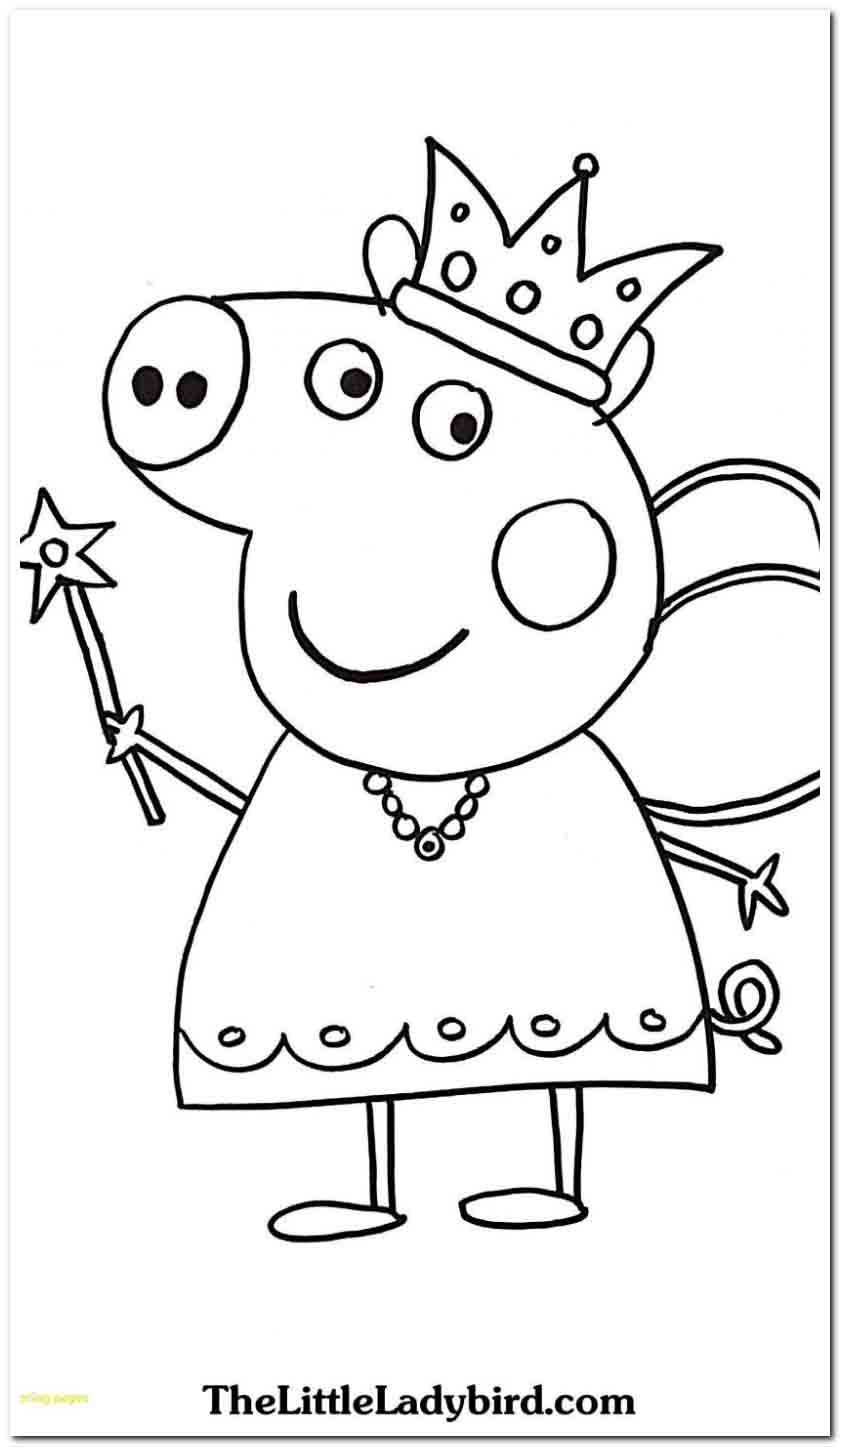 78 Coloring Pages Unicorn Coloring Peppa Pig Coloring Pages Peppa Pig Colouring Cartoon Coloring Pages